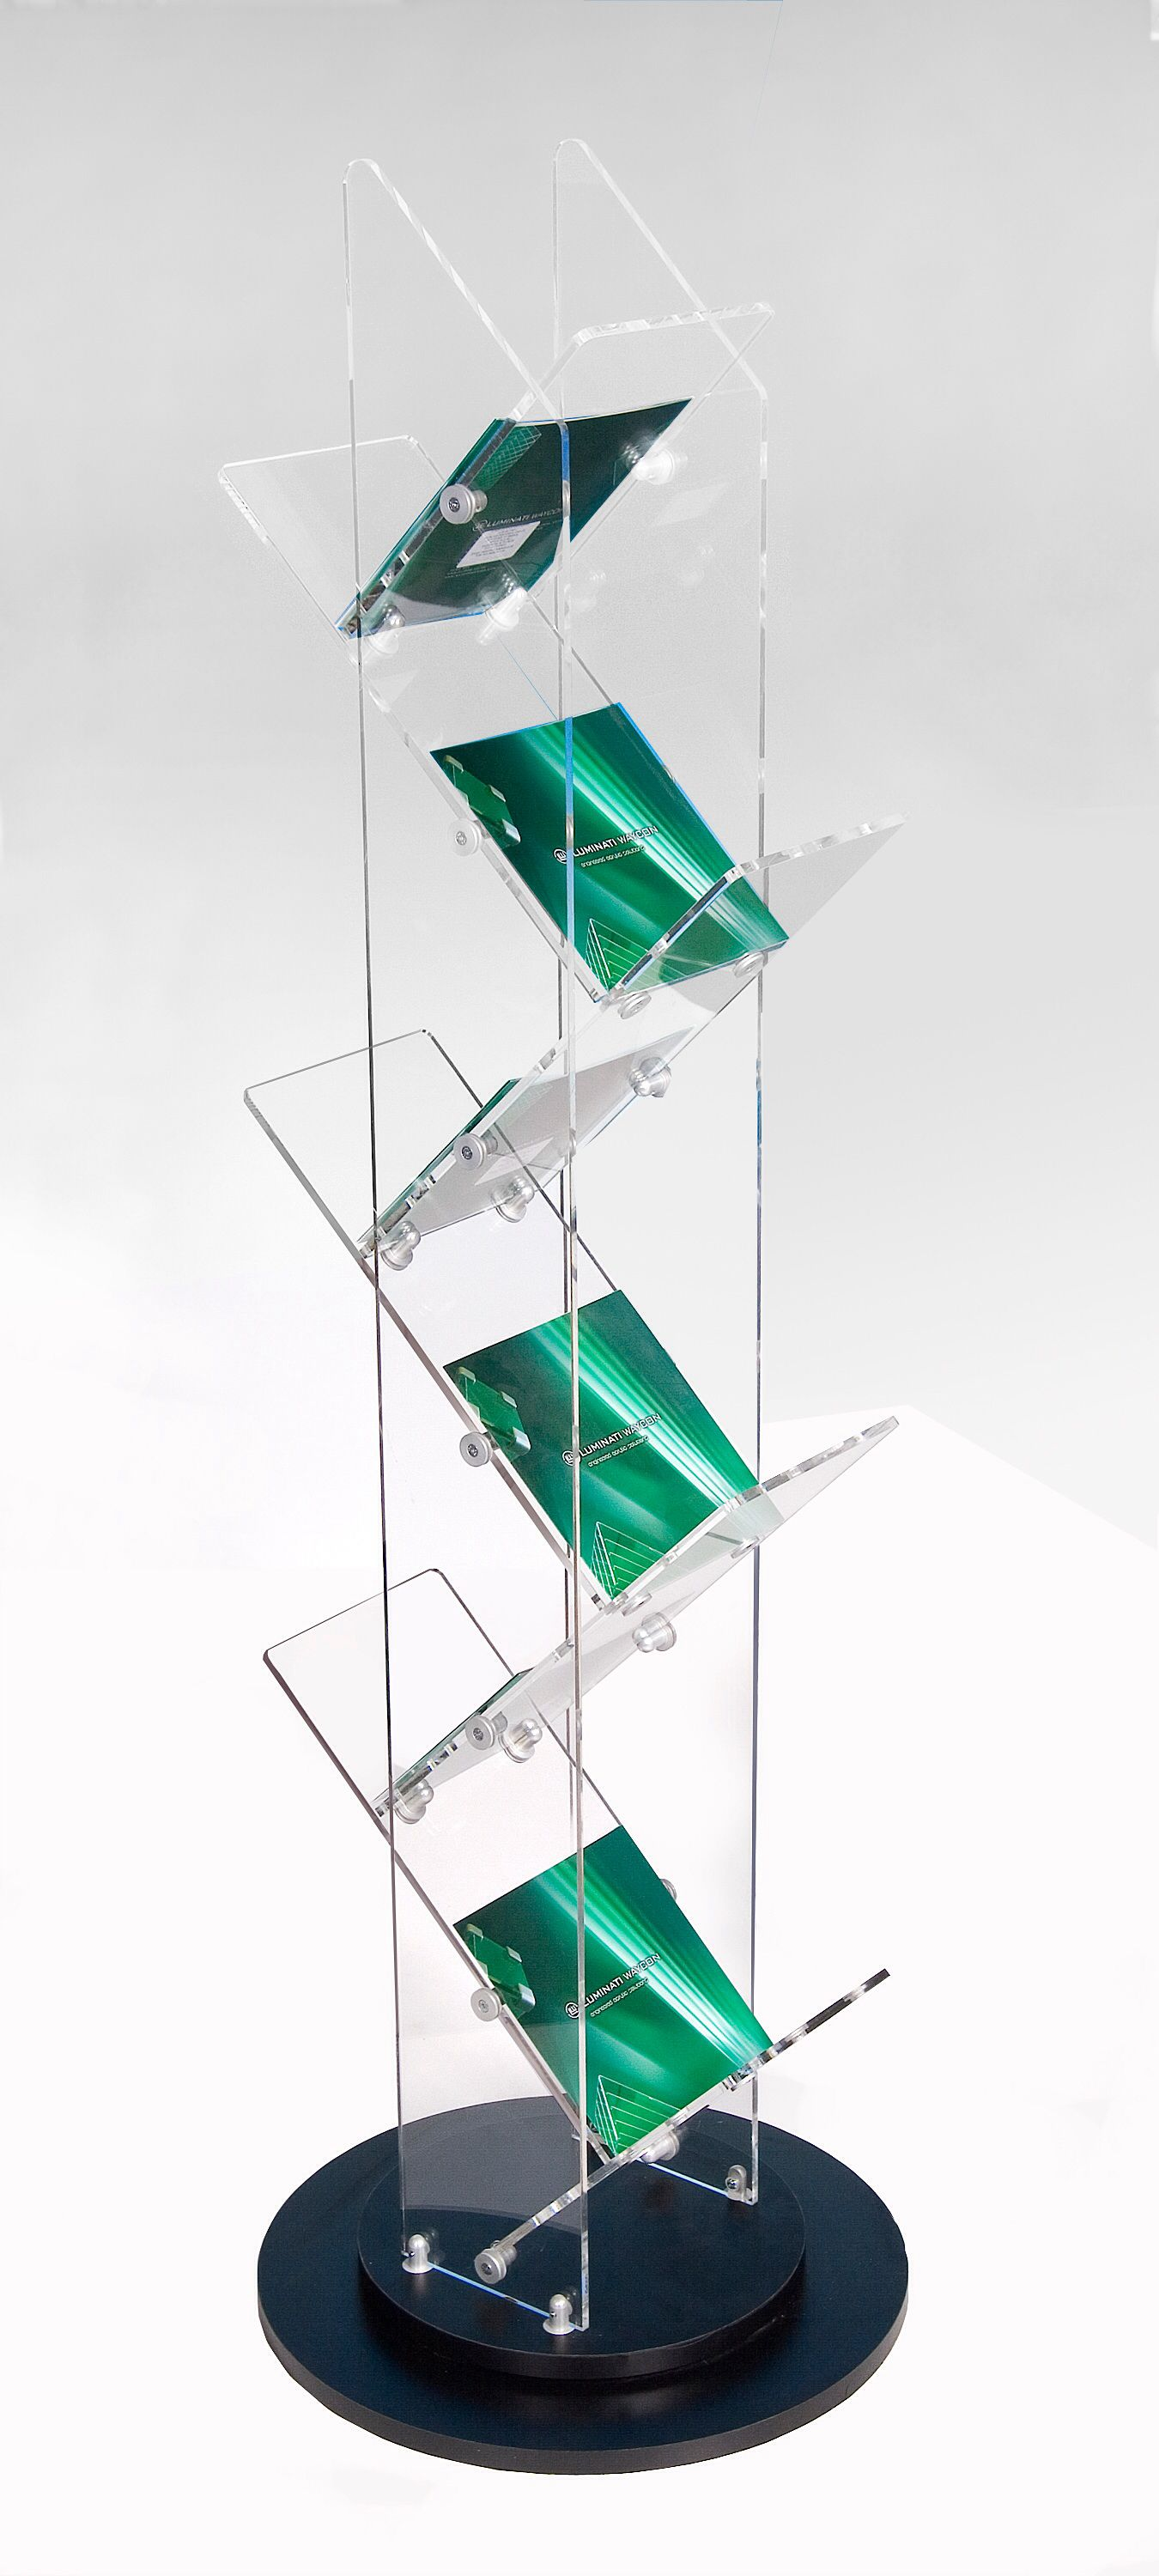 p leaflet picture literature mallet stock or mount magazine pamphlet brochure divulge photo holder display rack wall of wooden